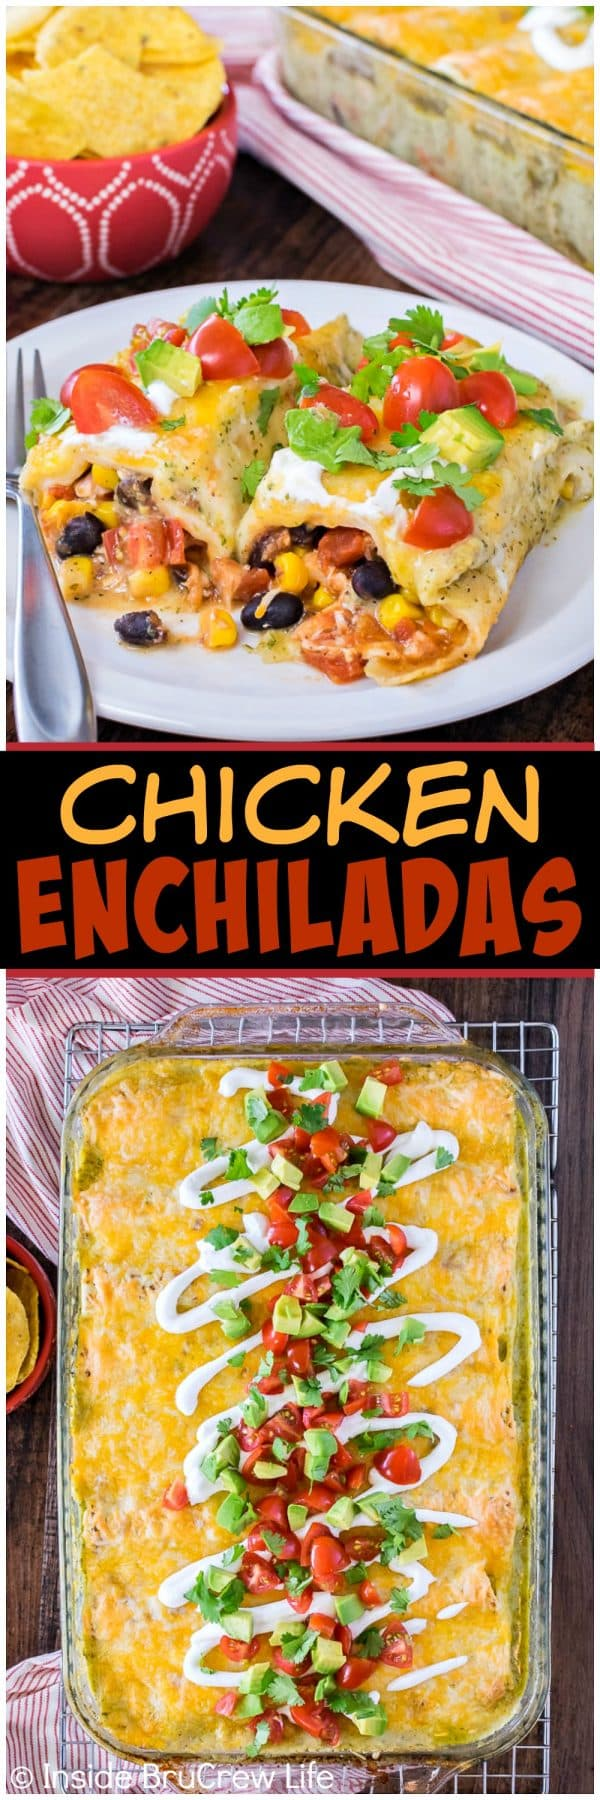 Easy Chicken Enchiladas - these easy tortillas are loaded with beans, veggies, and shredded chicken. Great recipe to make for busy nights! #dinner #chicken #enchiladas #mexican #greensauce #easydinner